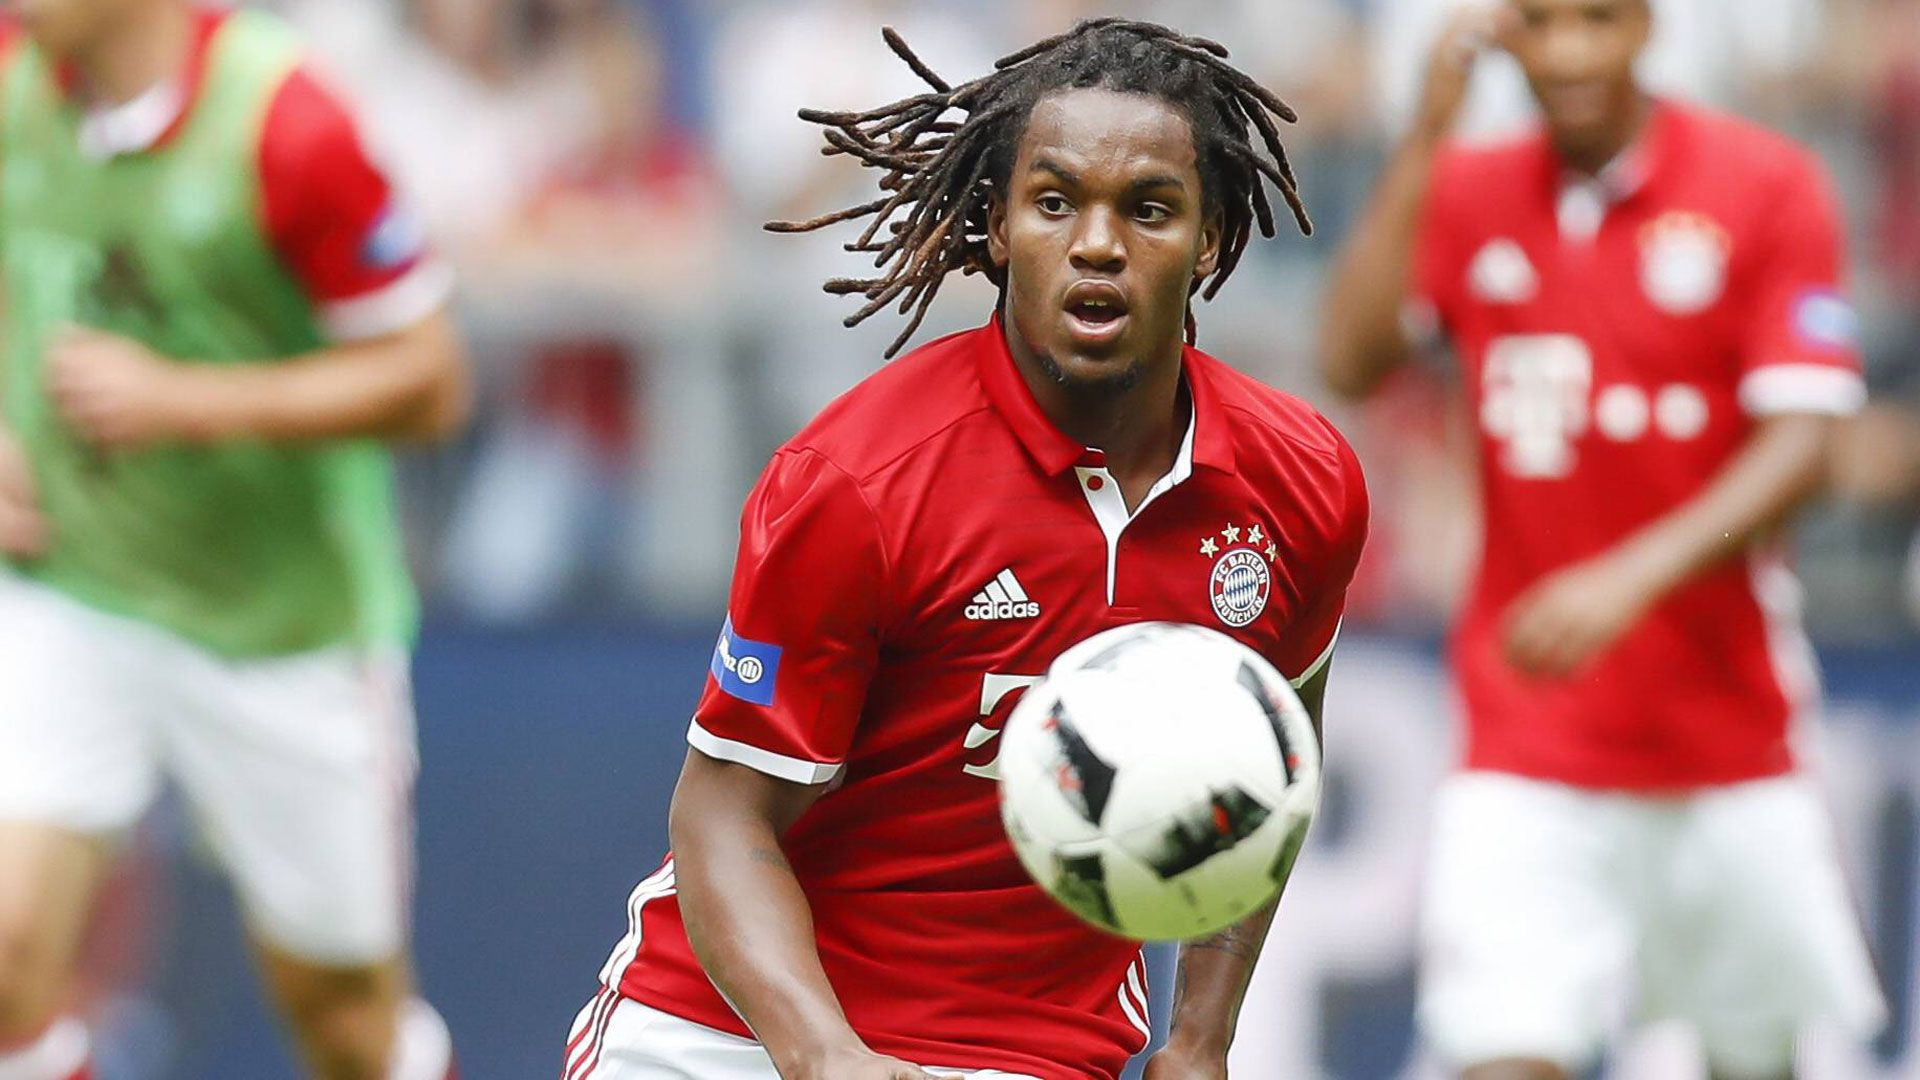 Renato Sanches It was not very good I was expecting more